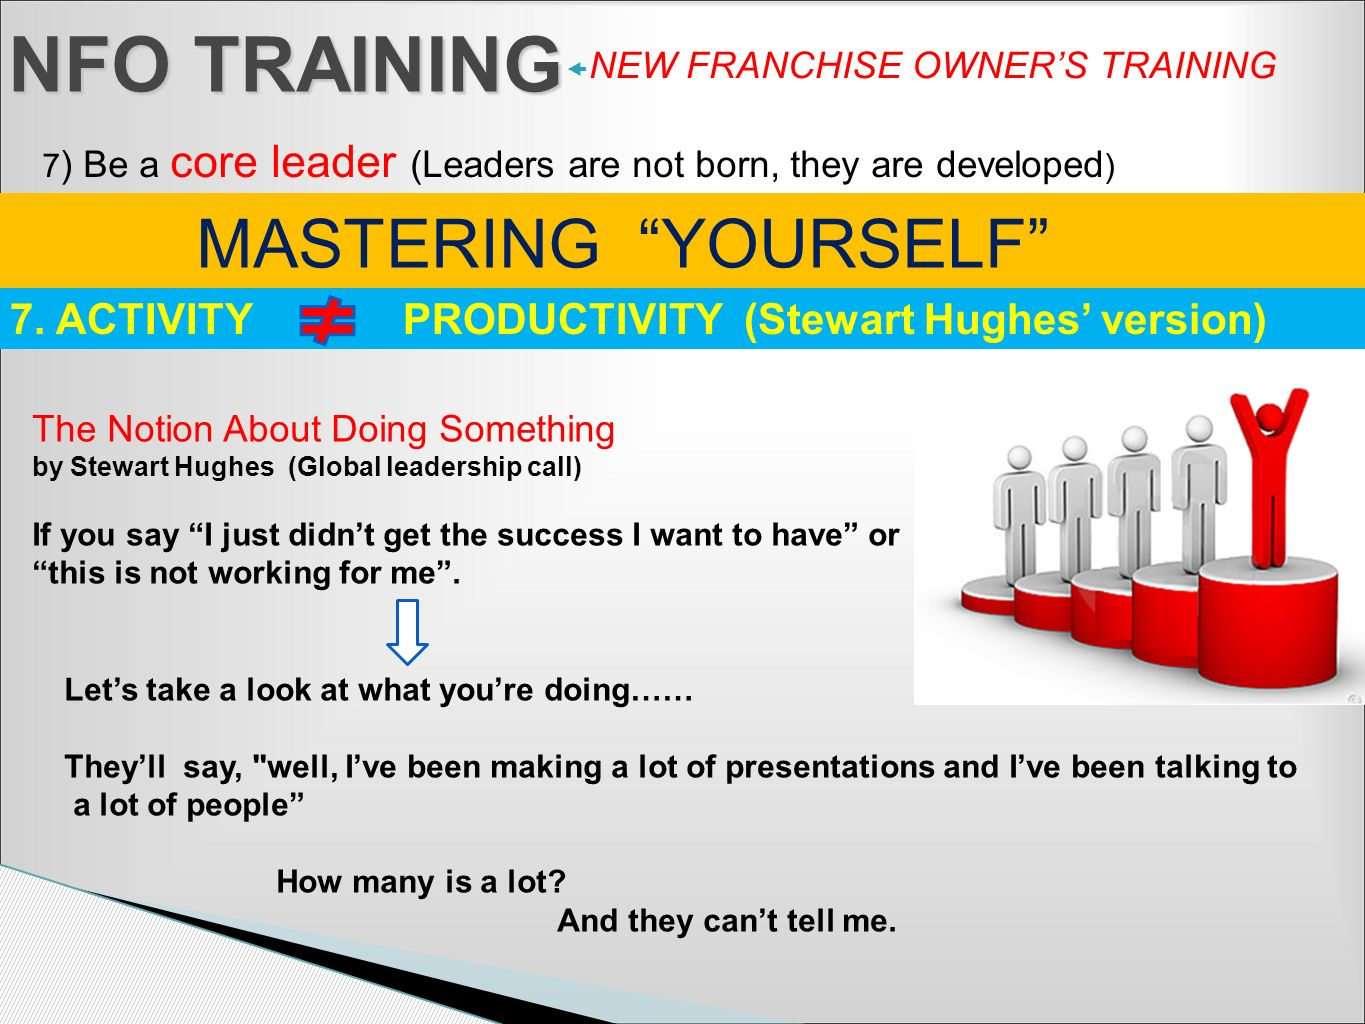 NFO TRAINING MASTERING YOURSELF